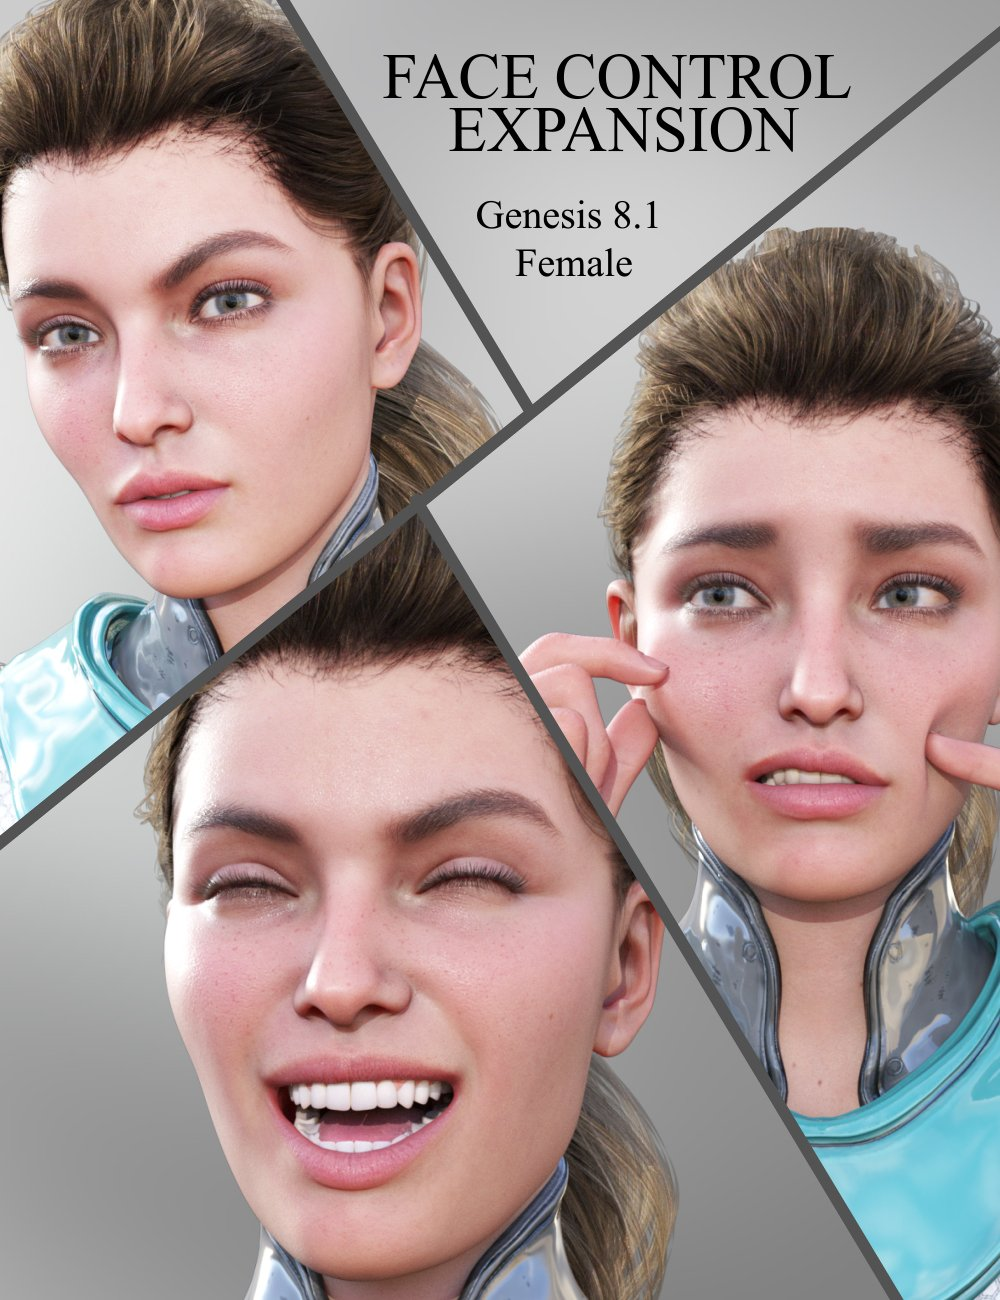 Face Control Expansion for Genesis 8.1 Female by: JWolf, 3D Models by Daz 3D